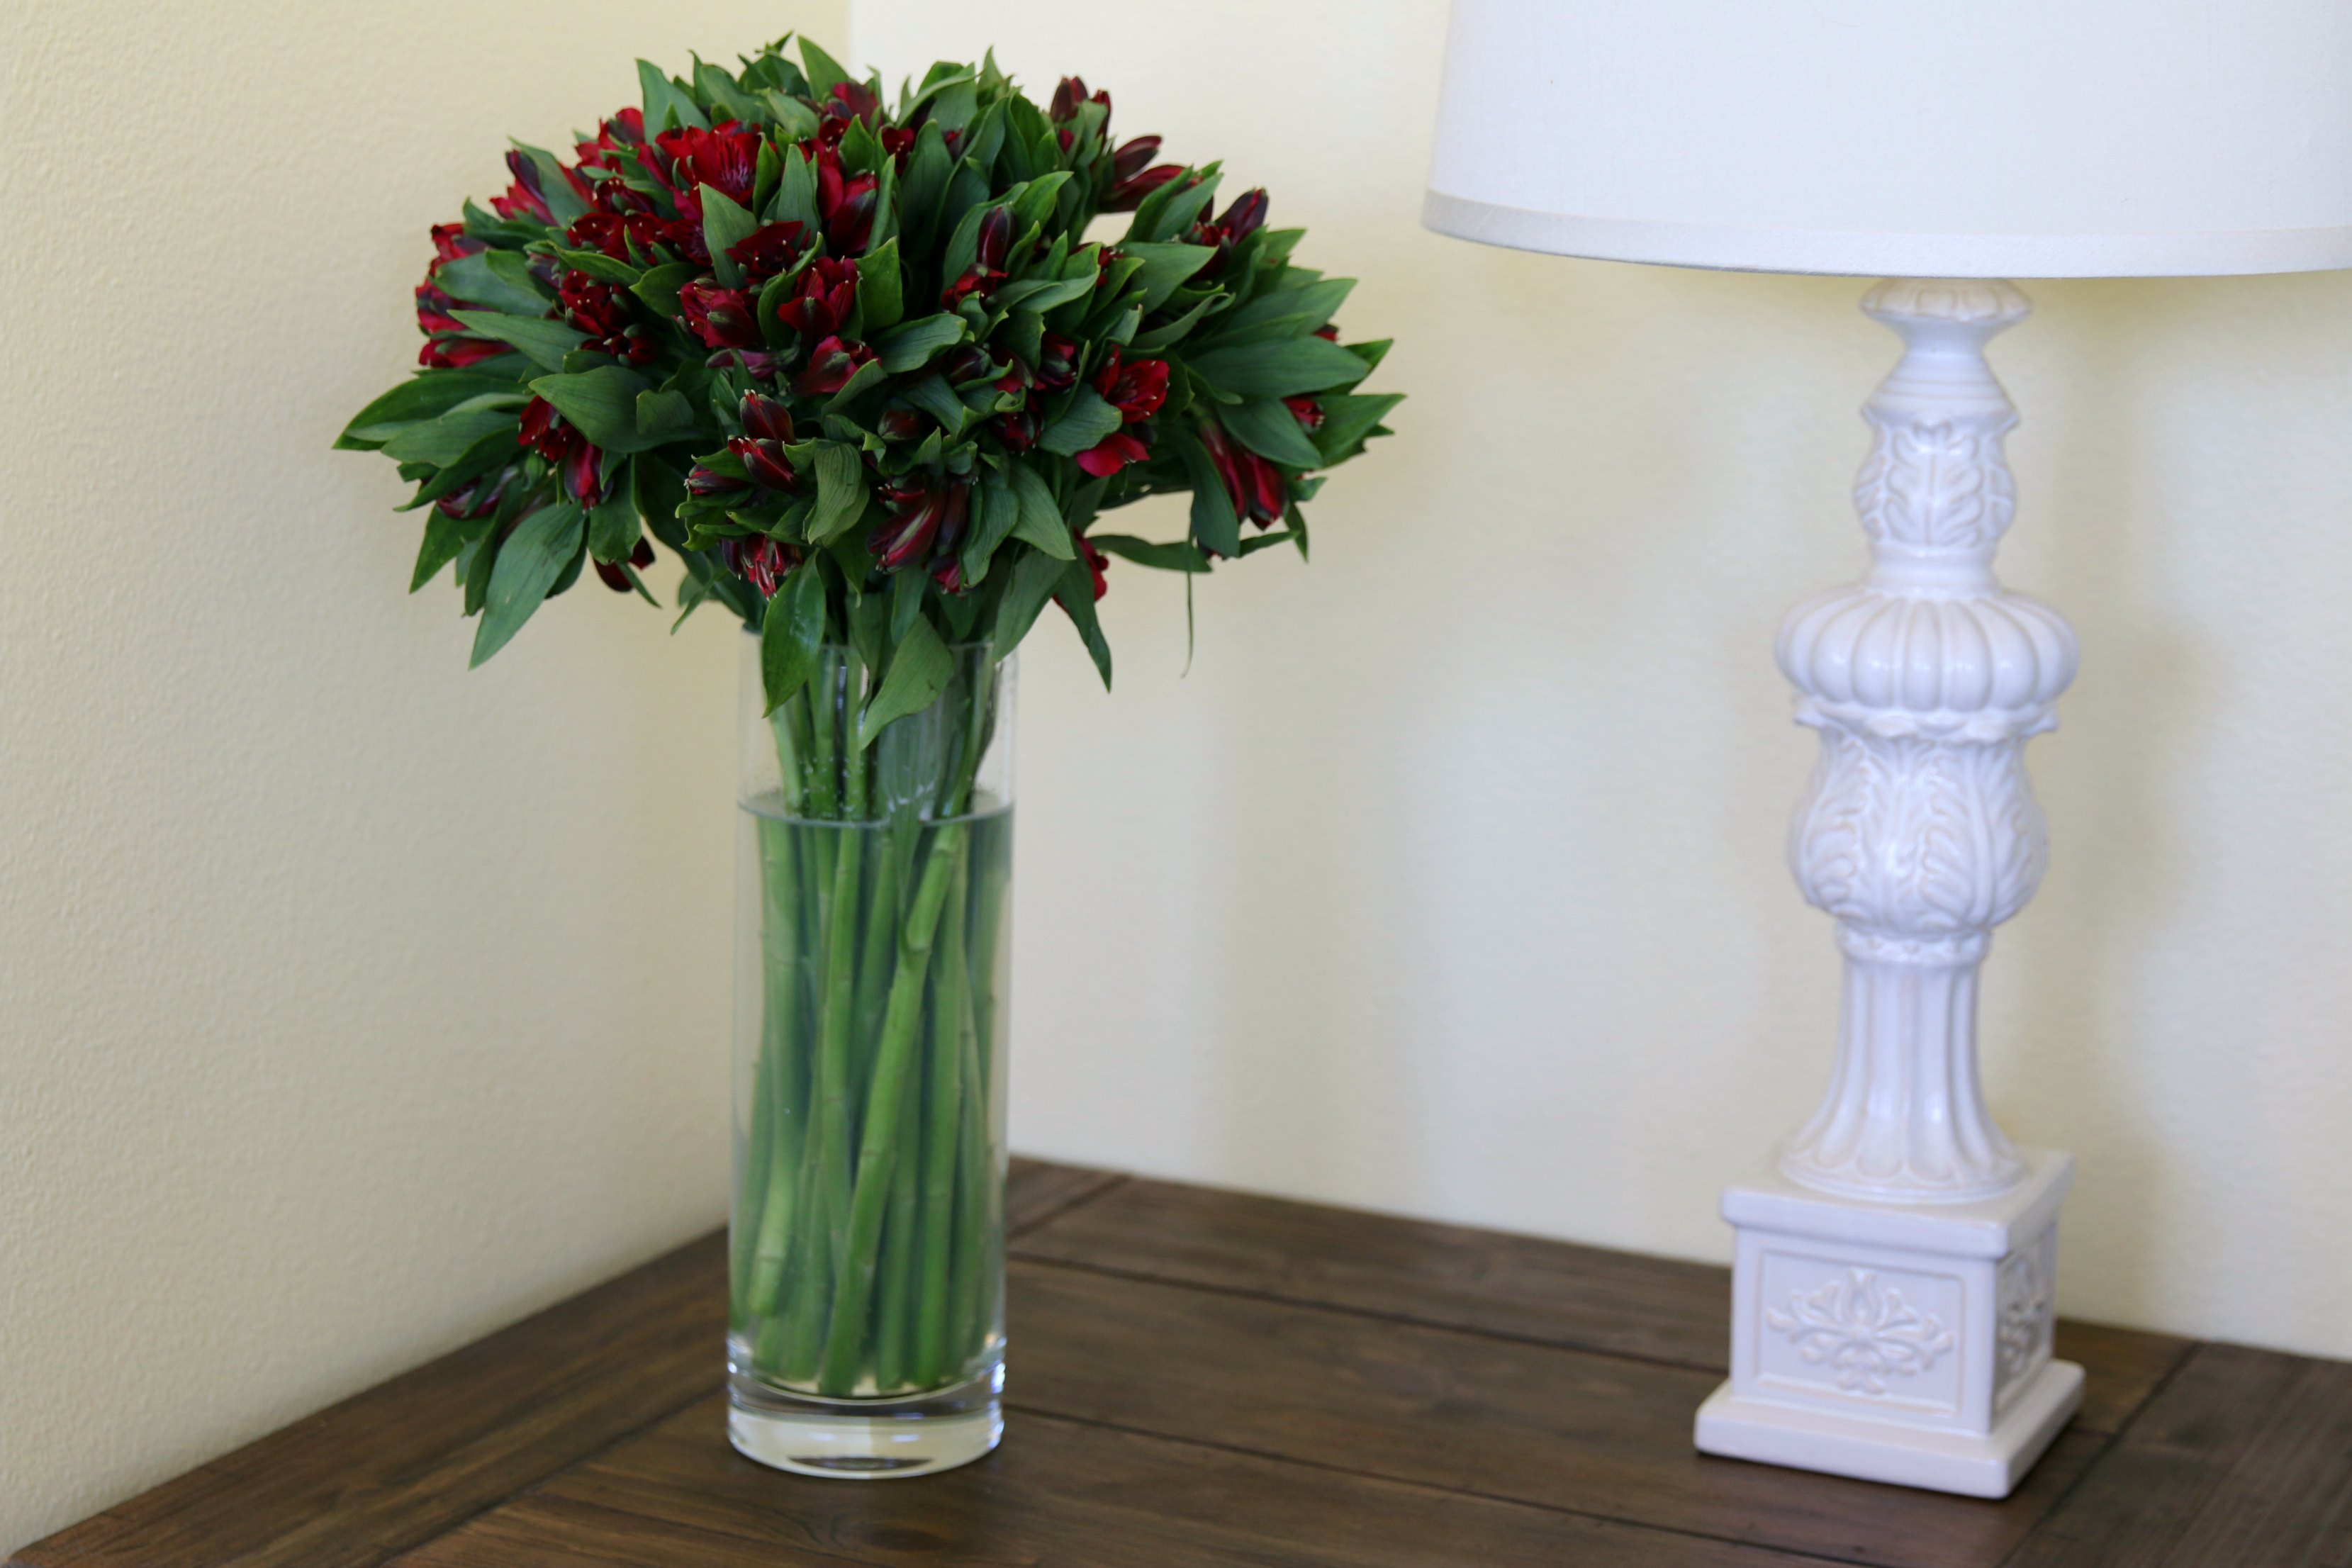 flowers delivered in the mail